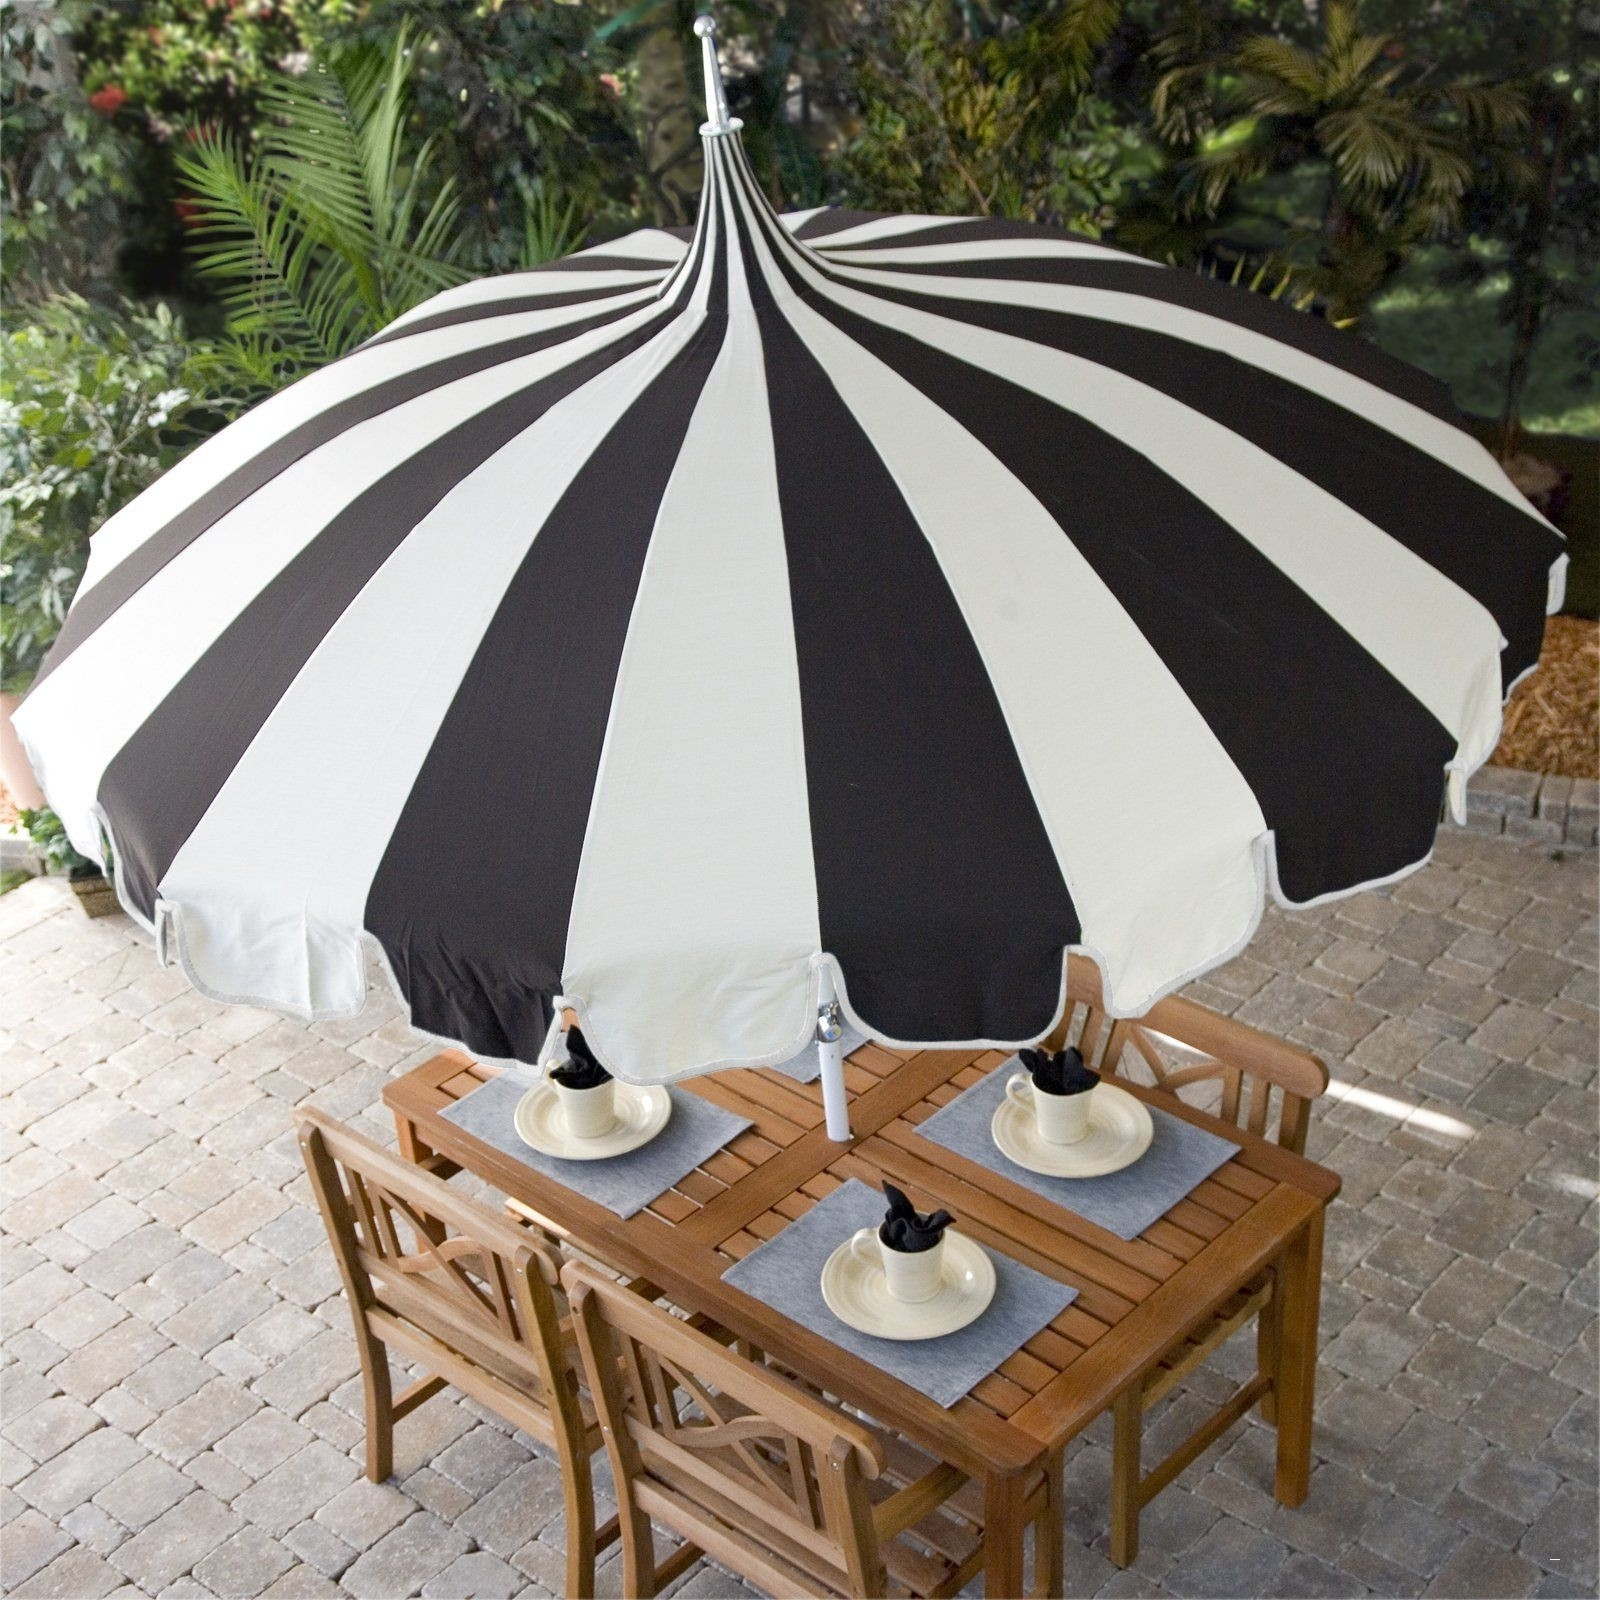 Popular Striped Patio Umbrellas Regarding 20 Amazing Striped Patio Umbrella Patio Furniture Concept Of 6 Ft (Gallery 14 of 20)